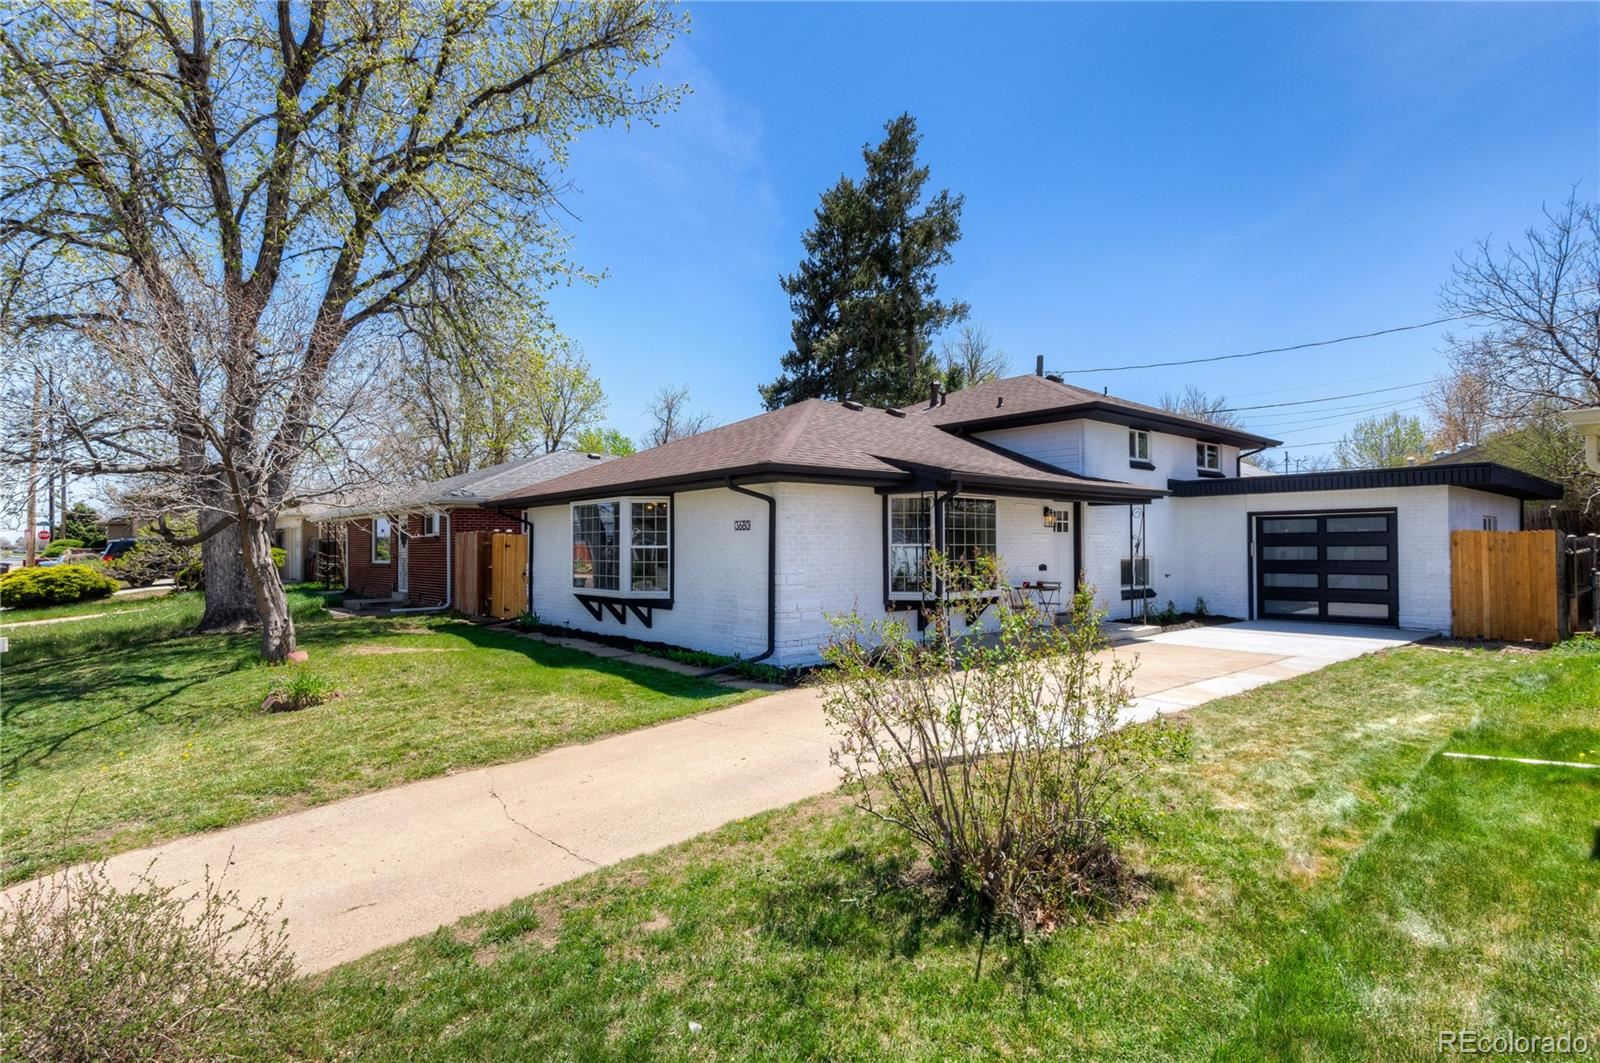 3680 W 47th Avenue, Denver, CO 80211 - #: 7588960